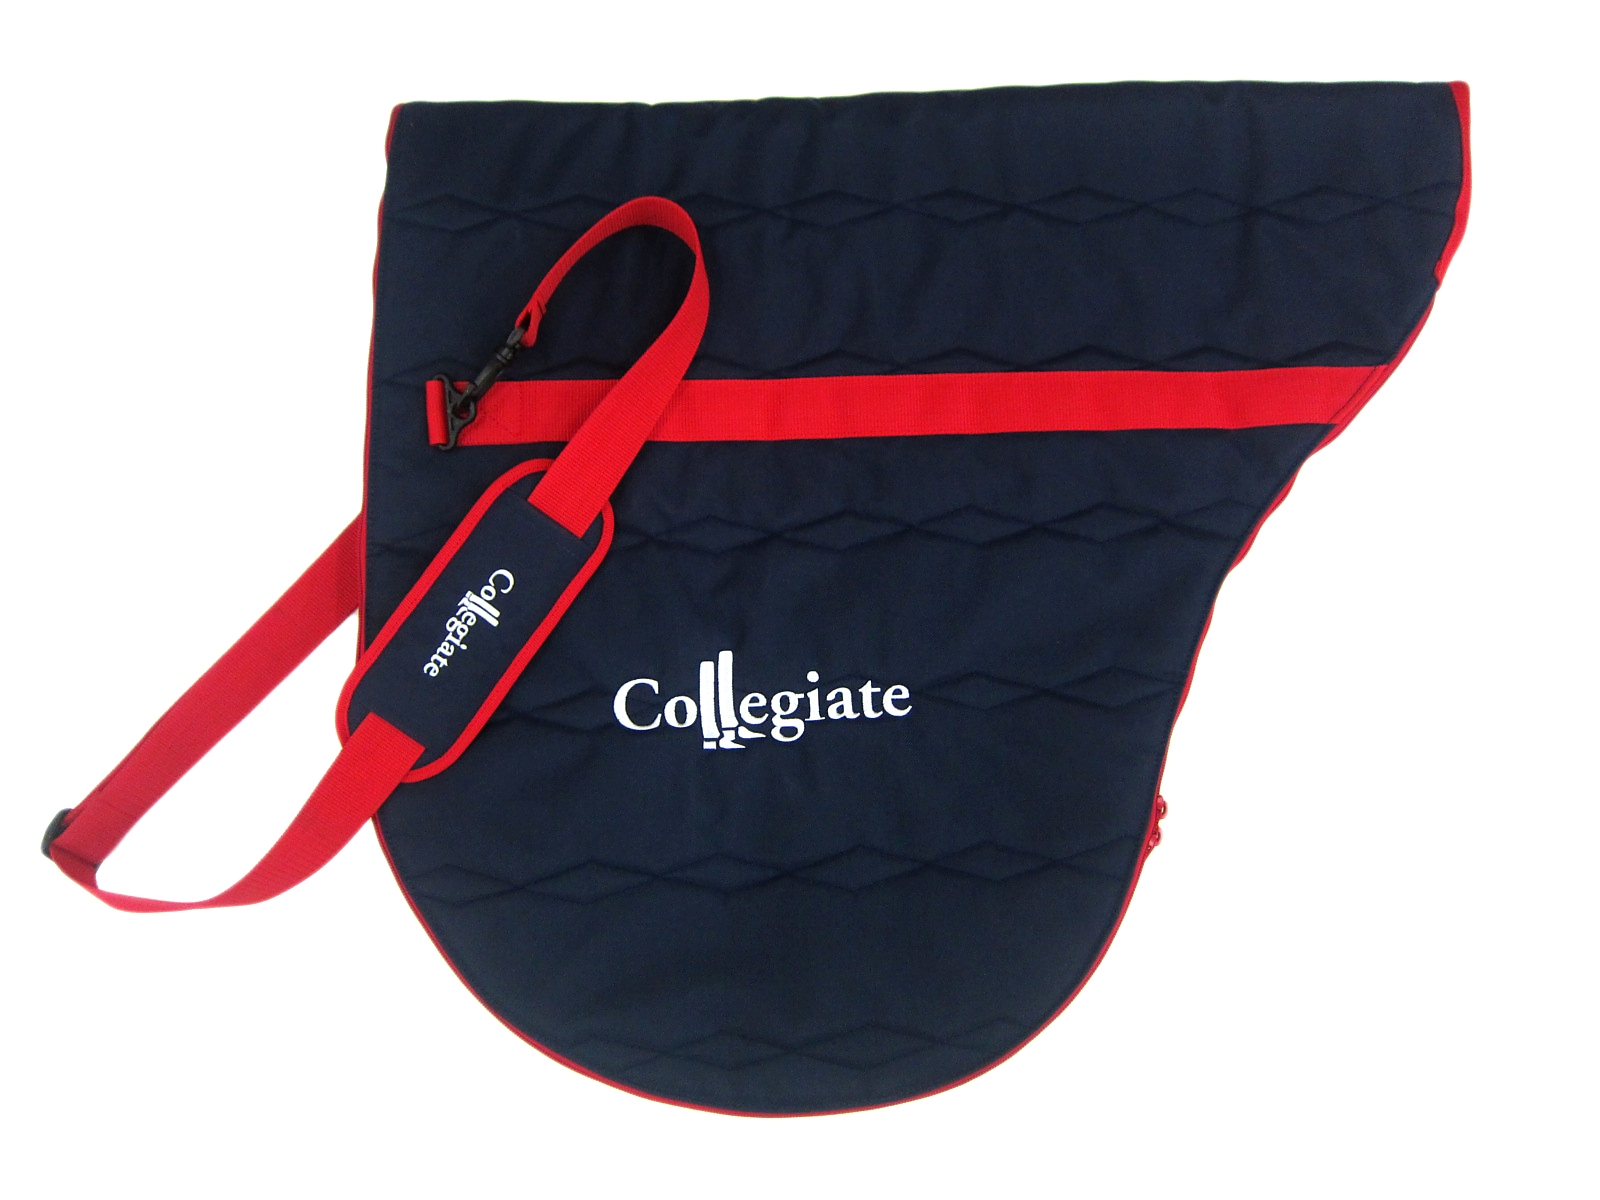 Collegiate Saddle Bag